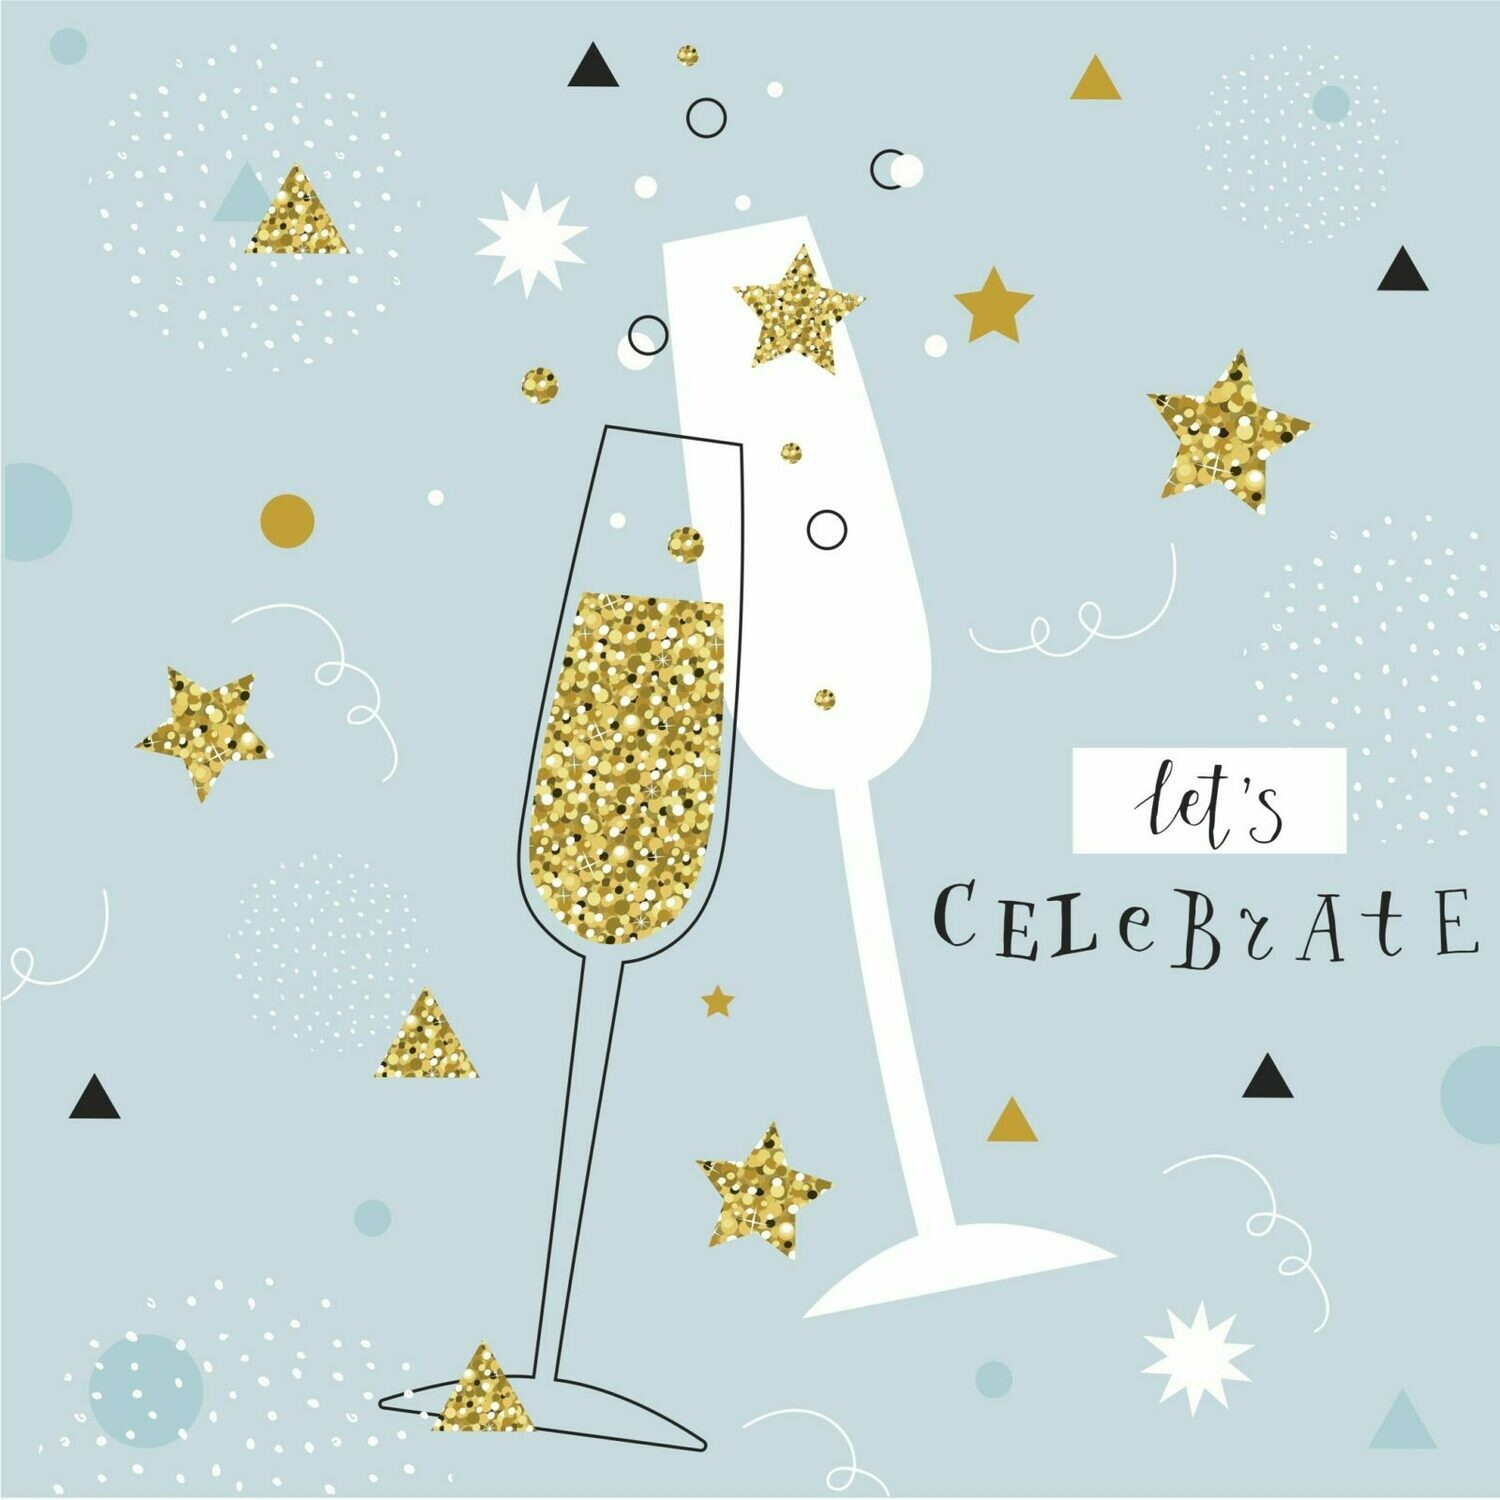 A Virtual Celebration Box (with a complimentary bottle of wine)